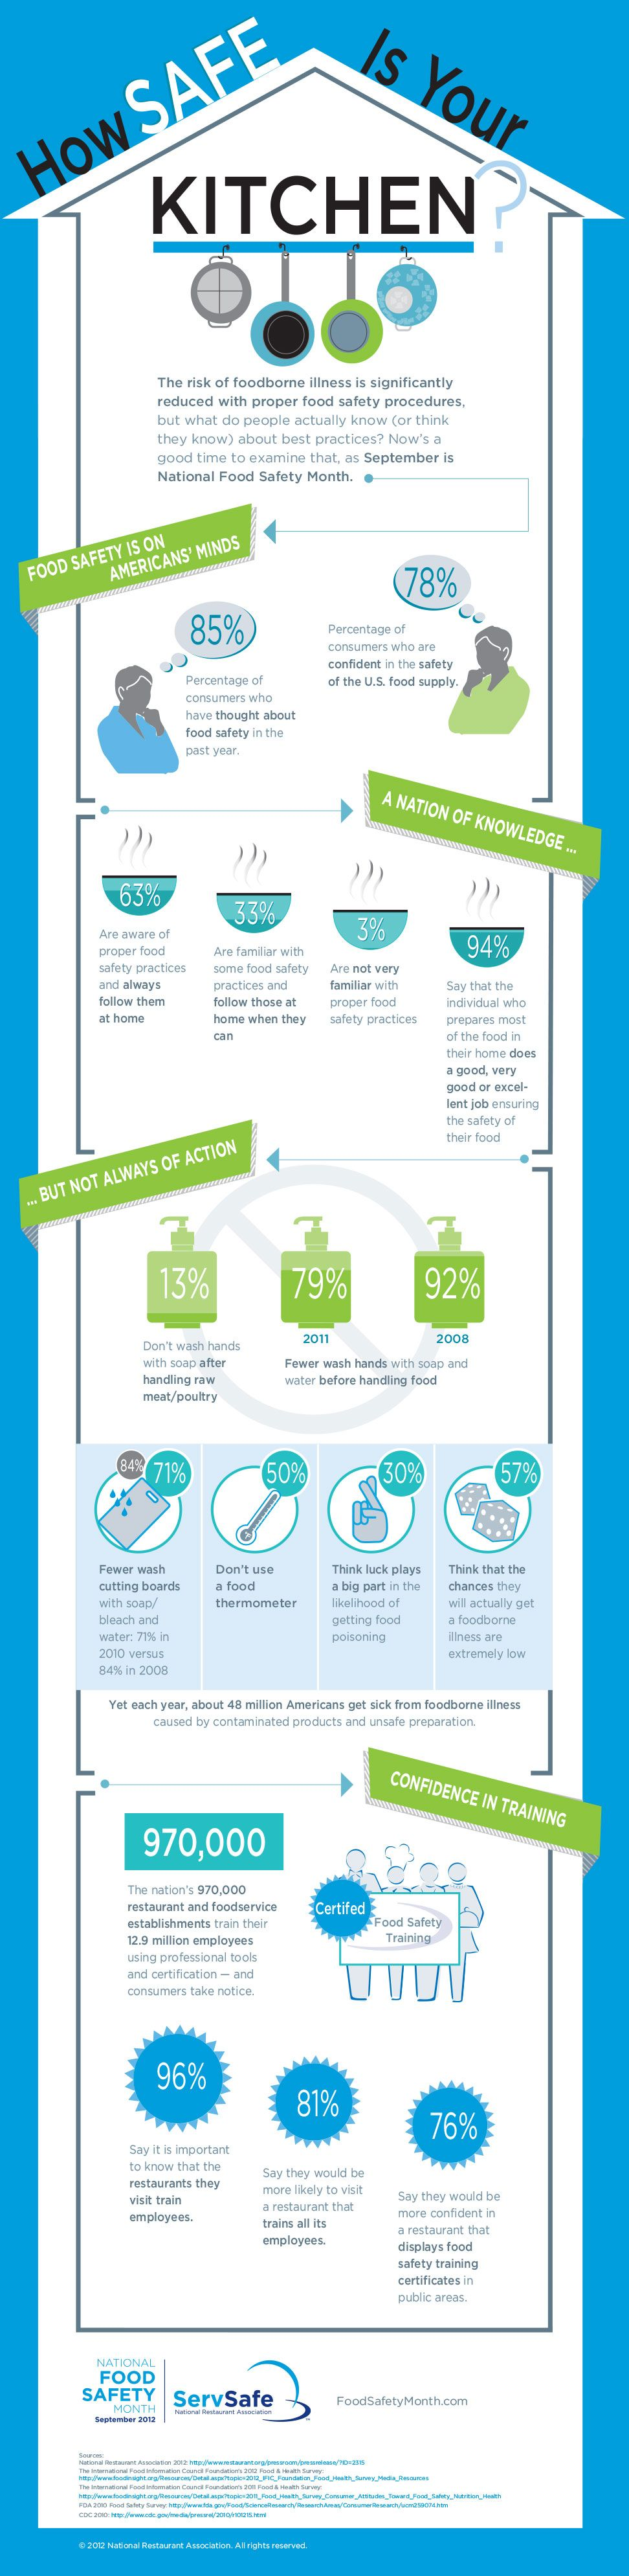 Restaurant Kitchen Guidelines how safe is your kitchen infographic from the national restaurant